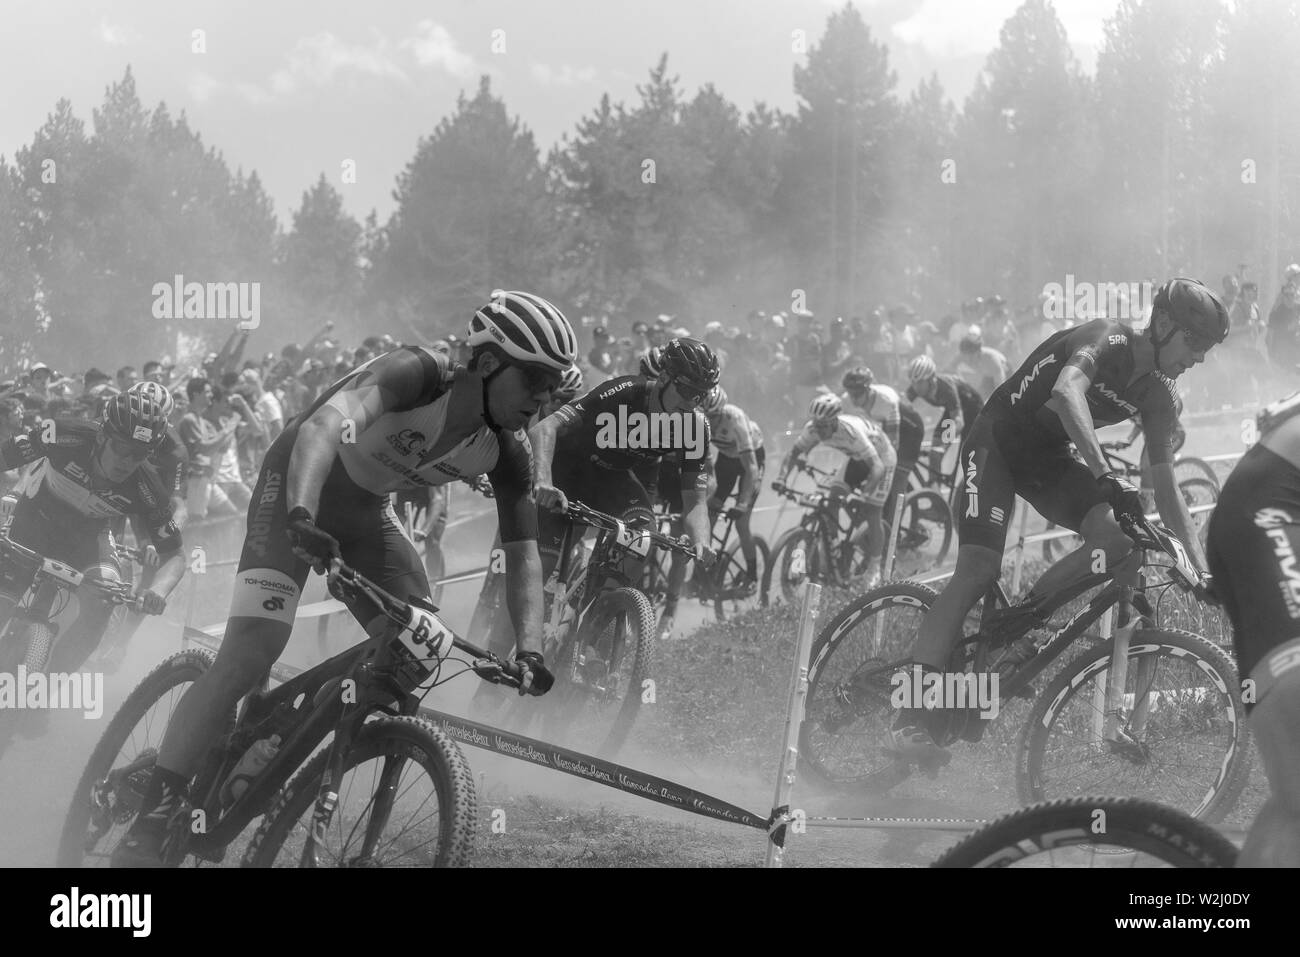 VALLNORD, ANDORRA  - JULY 7 2019:  CYCLISTS in the MERCEDES-BENZ UCI MTB WORLD CUP 2019 - XCO Vallnord, Andorra on July 2019 - Stock Image